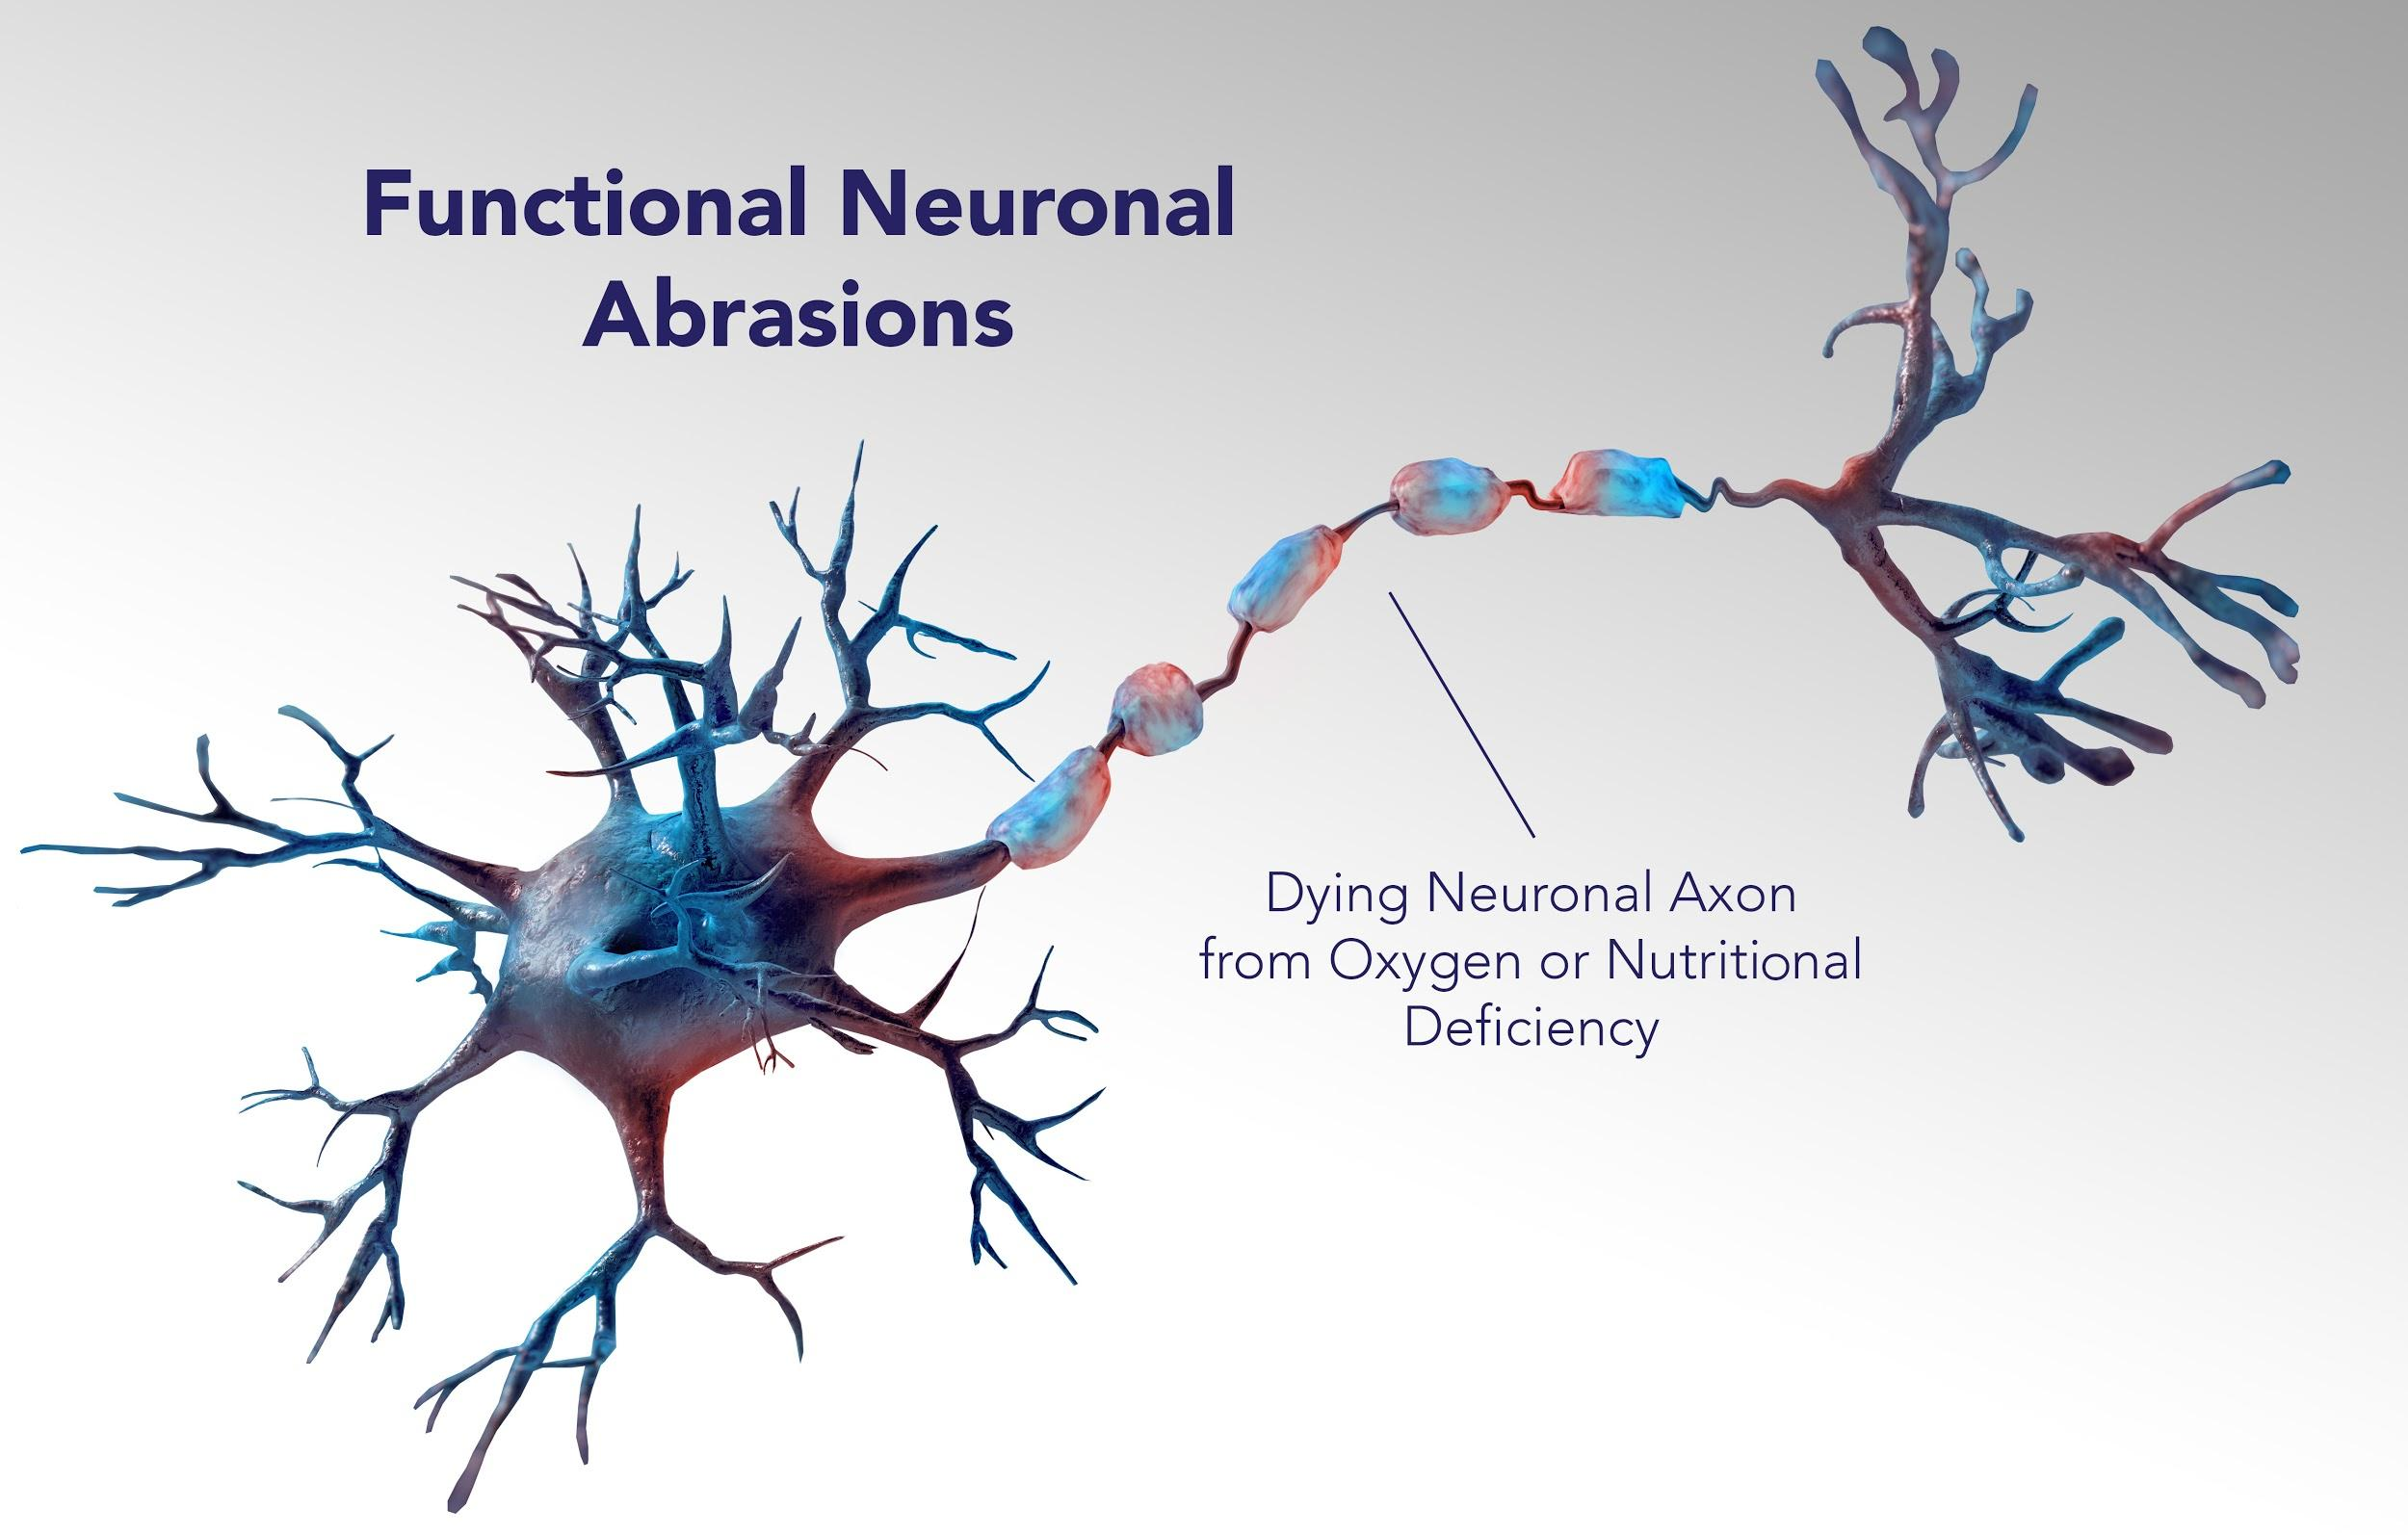 Functional Neuronal Abrasions: Dying Neuronal Axon from Oxygen or Nutritional Deficiency